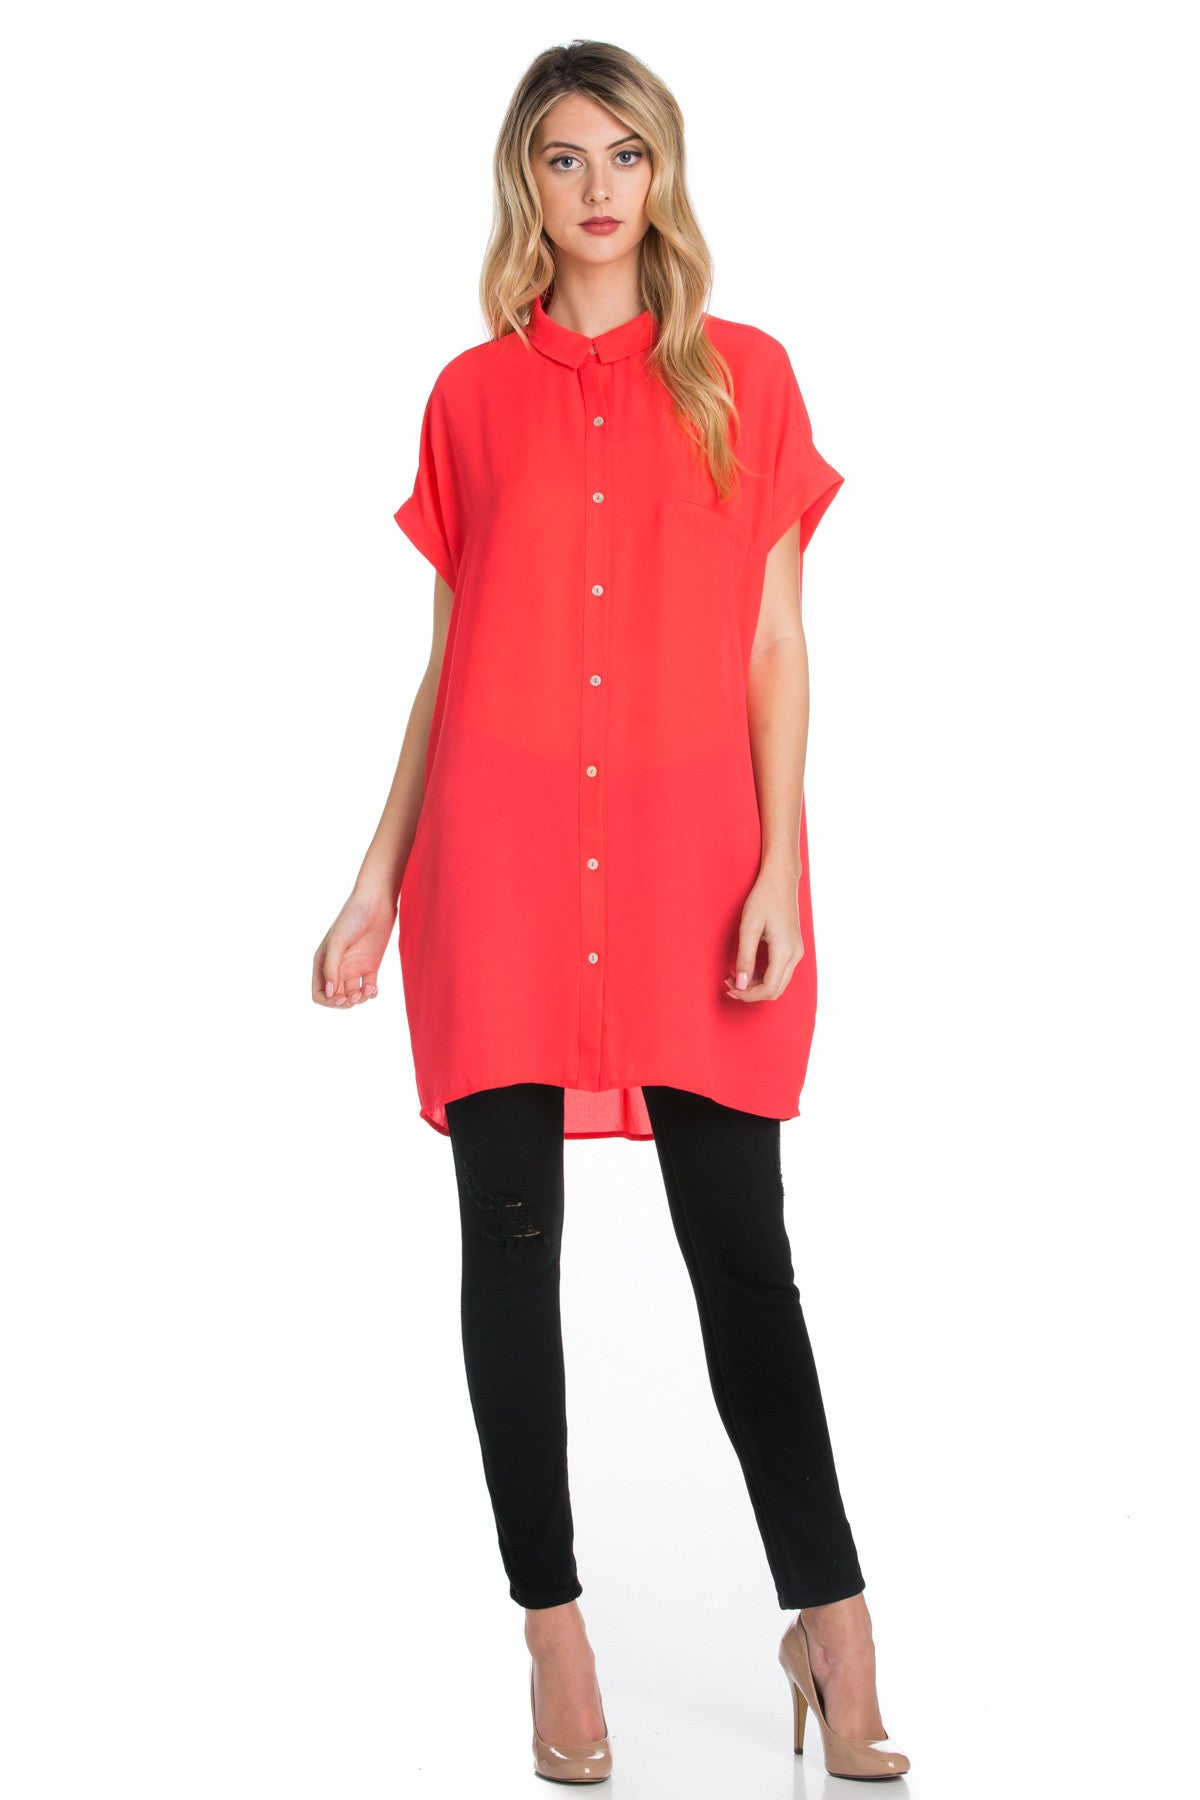 Short Sleeve Longline Button Down Chiffon Top in Sun Coral - Tops - My Yuccie - 3